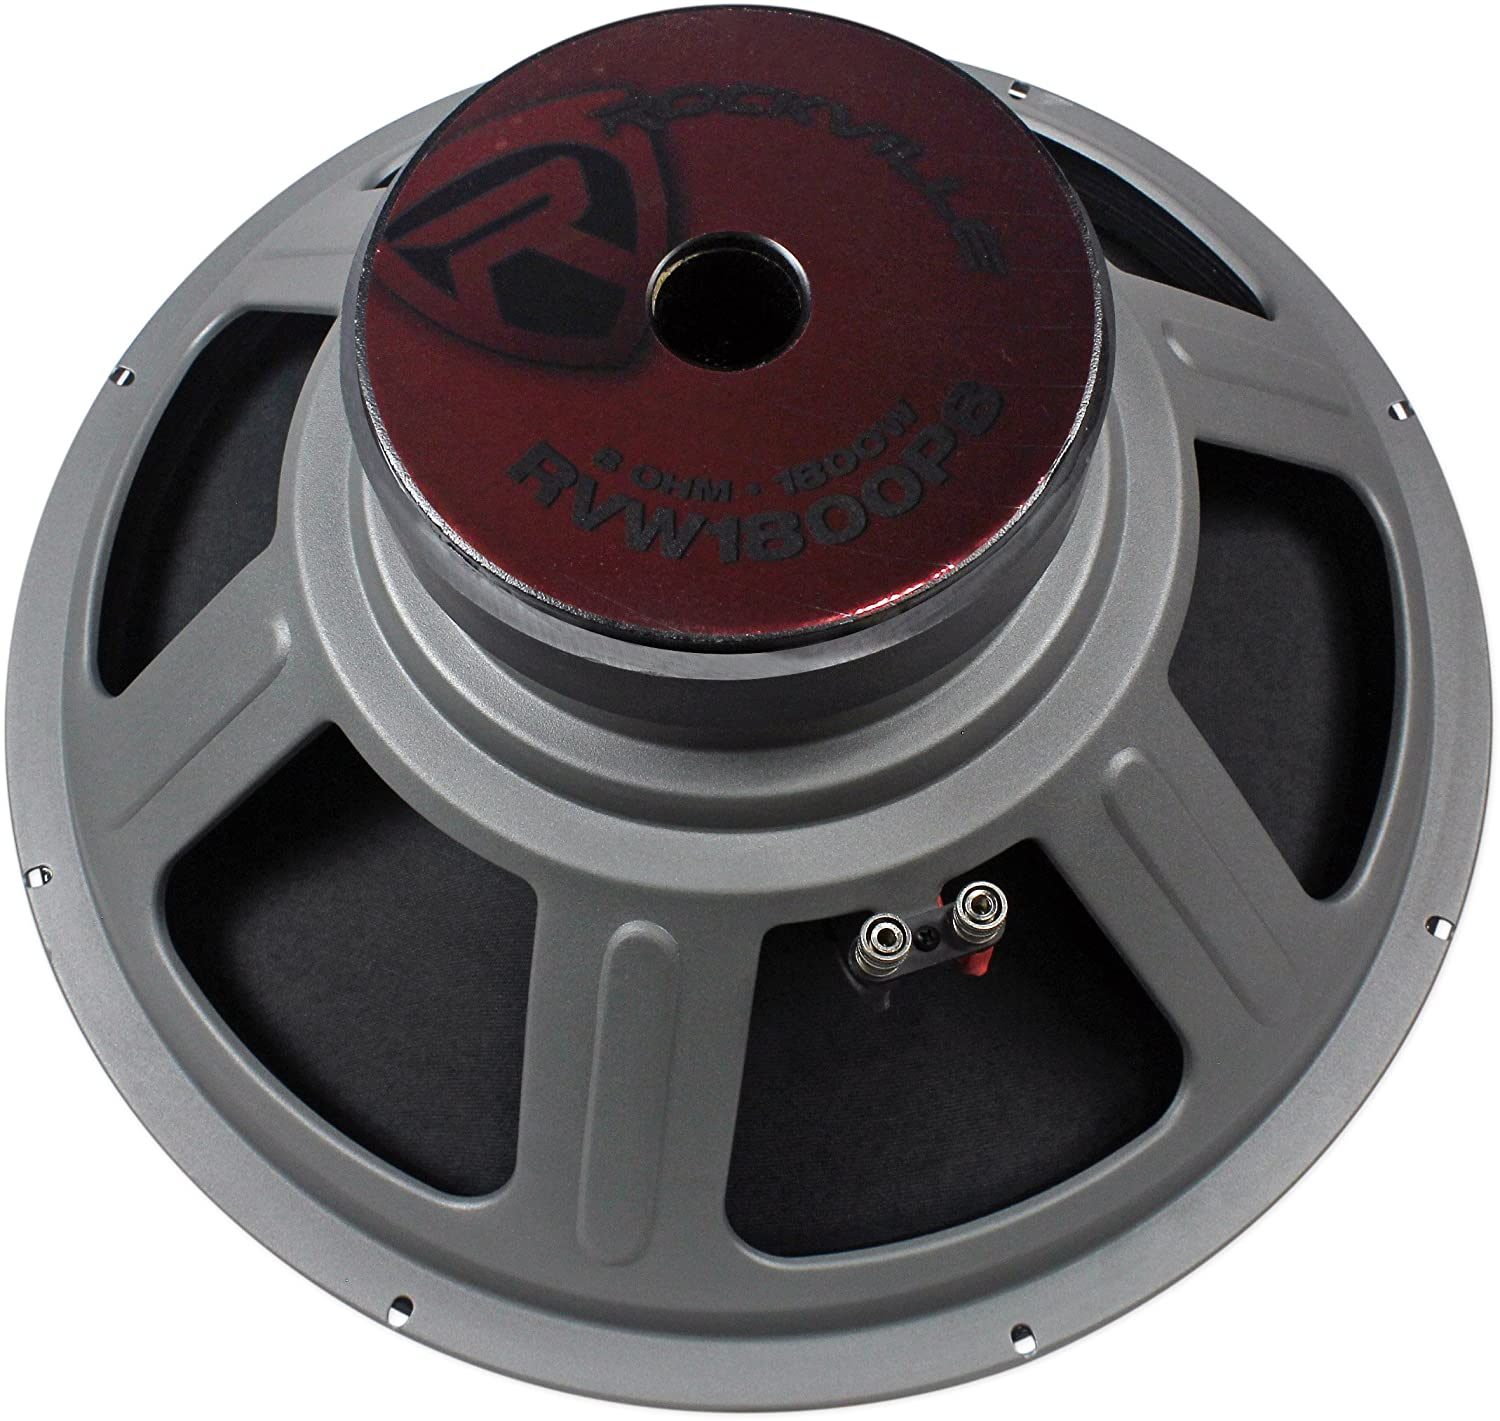 Rockville Rvw1800p8 1800w 18 Raw Dj Subwoofer 8 Ohm Sub 8ohm Wiring Diagram Woofer 107oz Magnet Musical Instruments